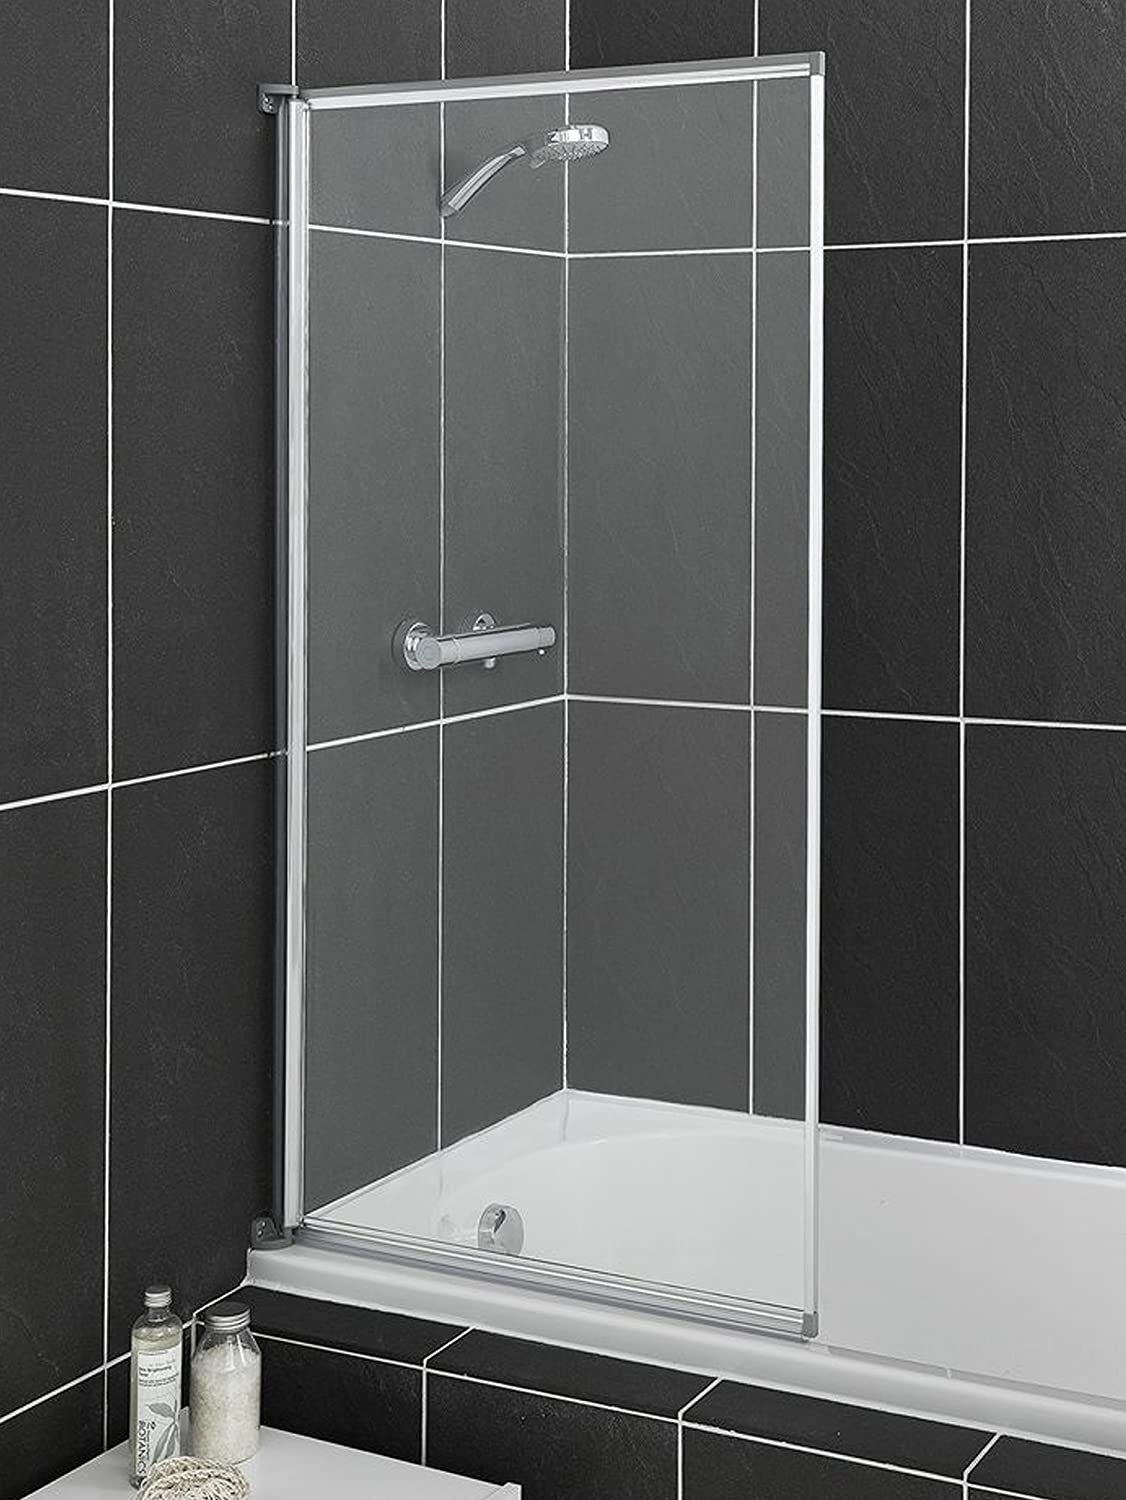 Aqualux 1192950 Fully Framed Sliver Bath Screen with Clear Glass - Silver